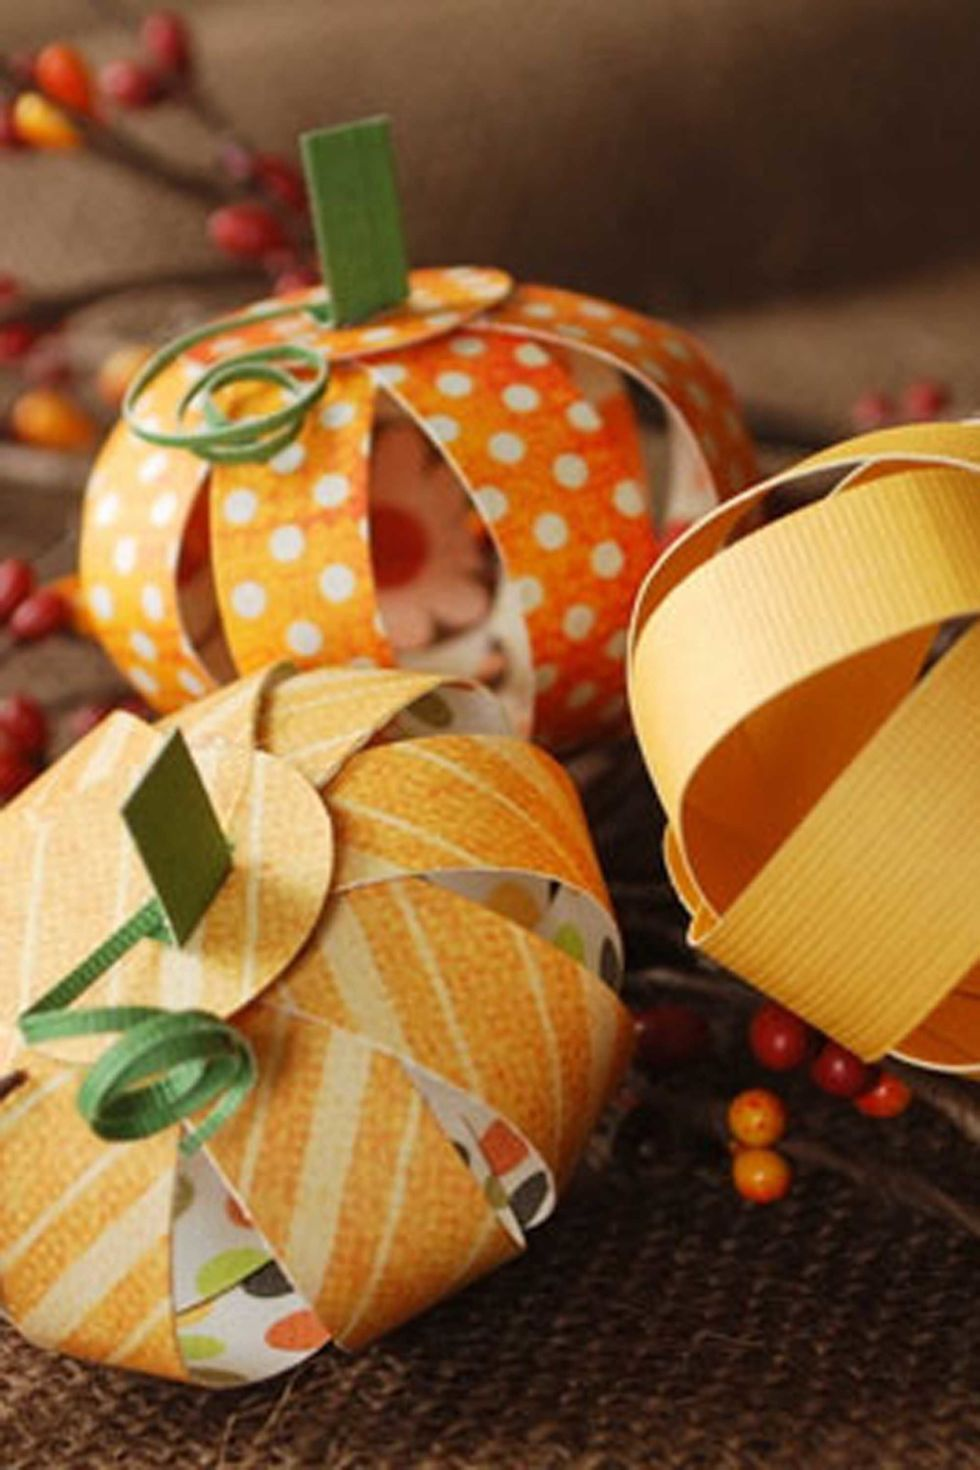 40 fall and thanksgiving centerpieces diy ideas for fall table decorations - Thanksgiving Centerpieces Ideas